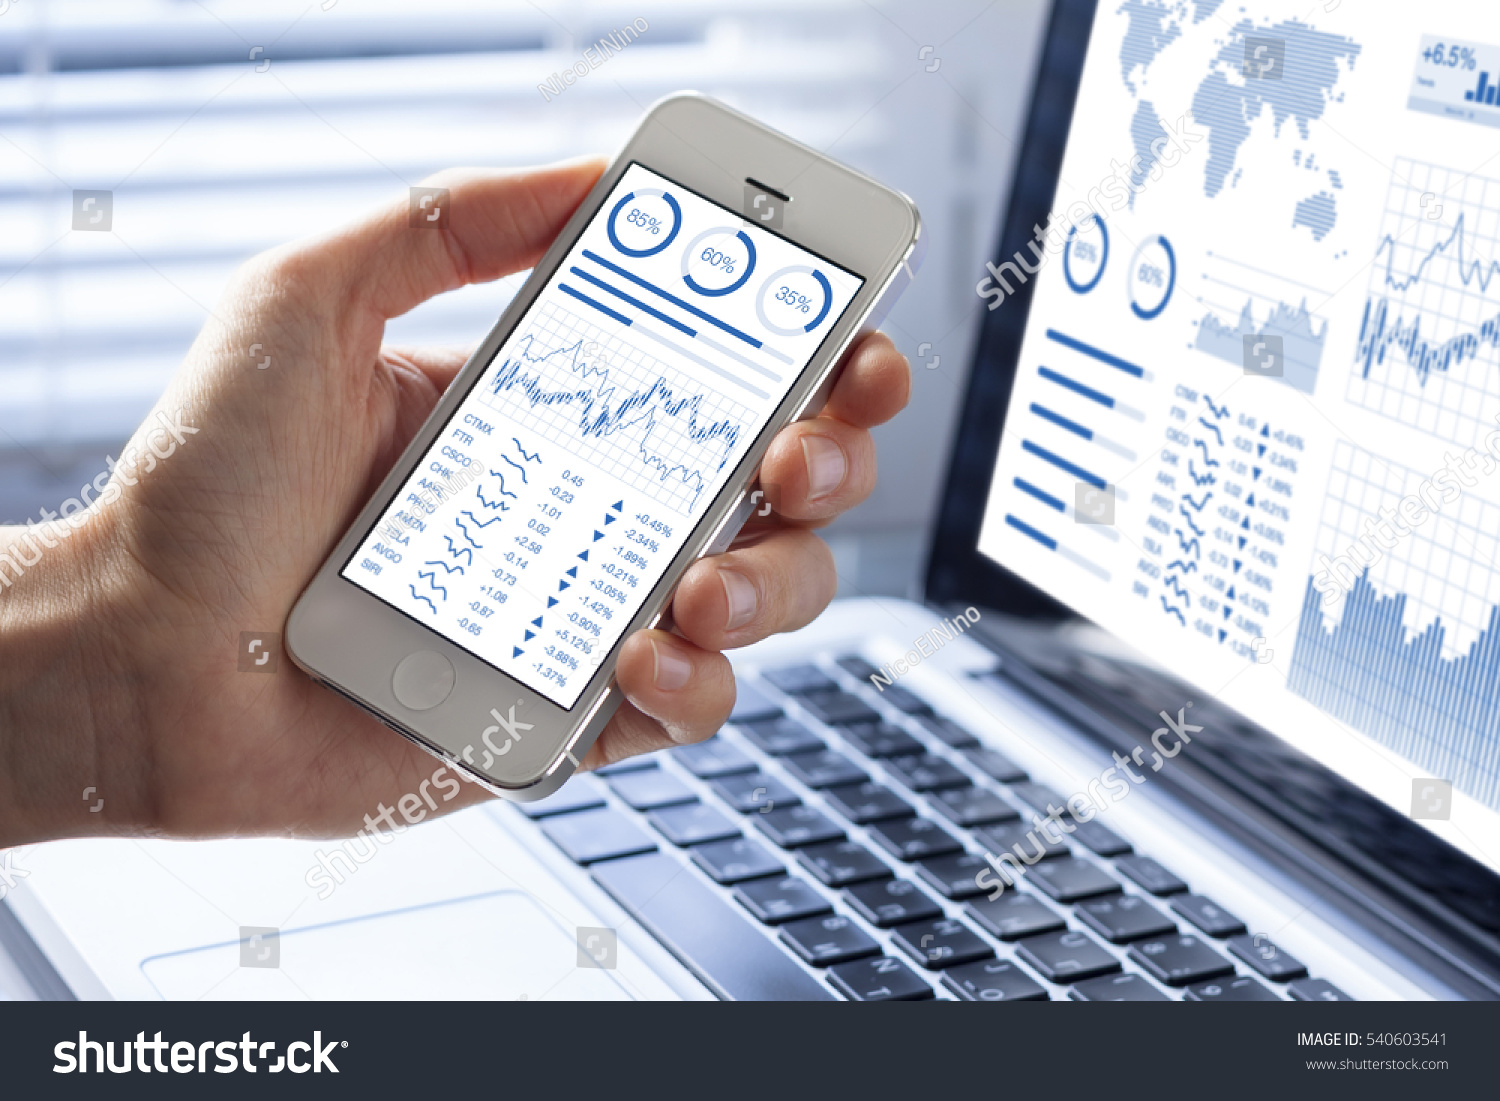 stock-photo-investor-analyzing-stock-market-investments-with-financial-dashboard-business-intelligence-bi-540603541